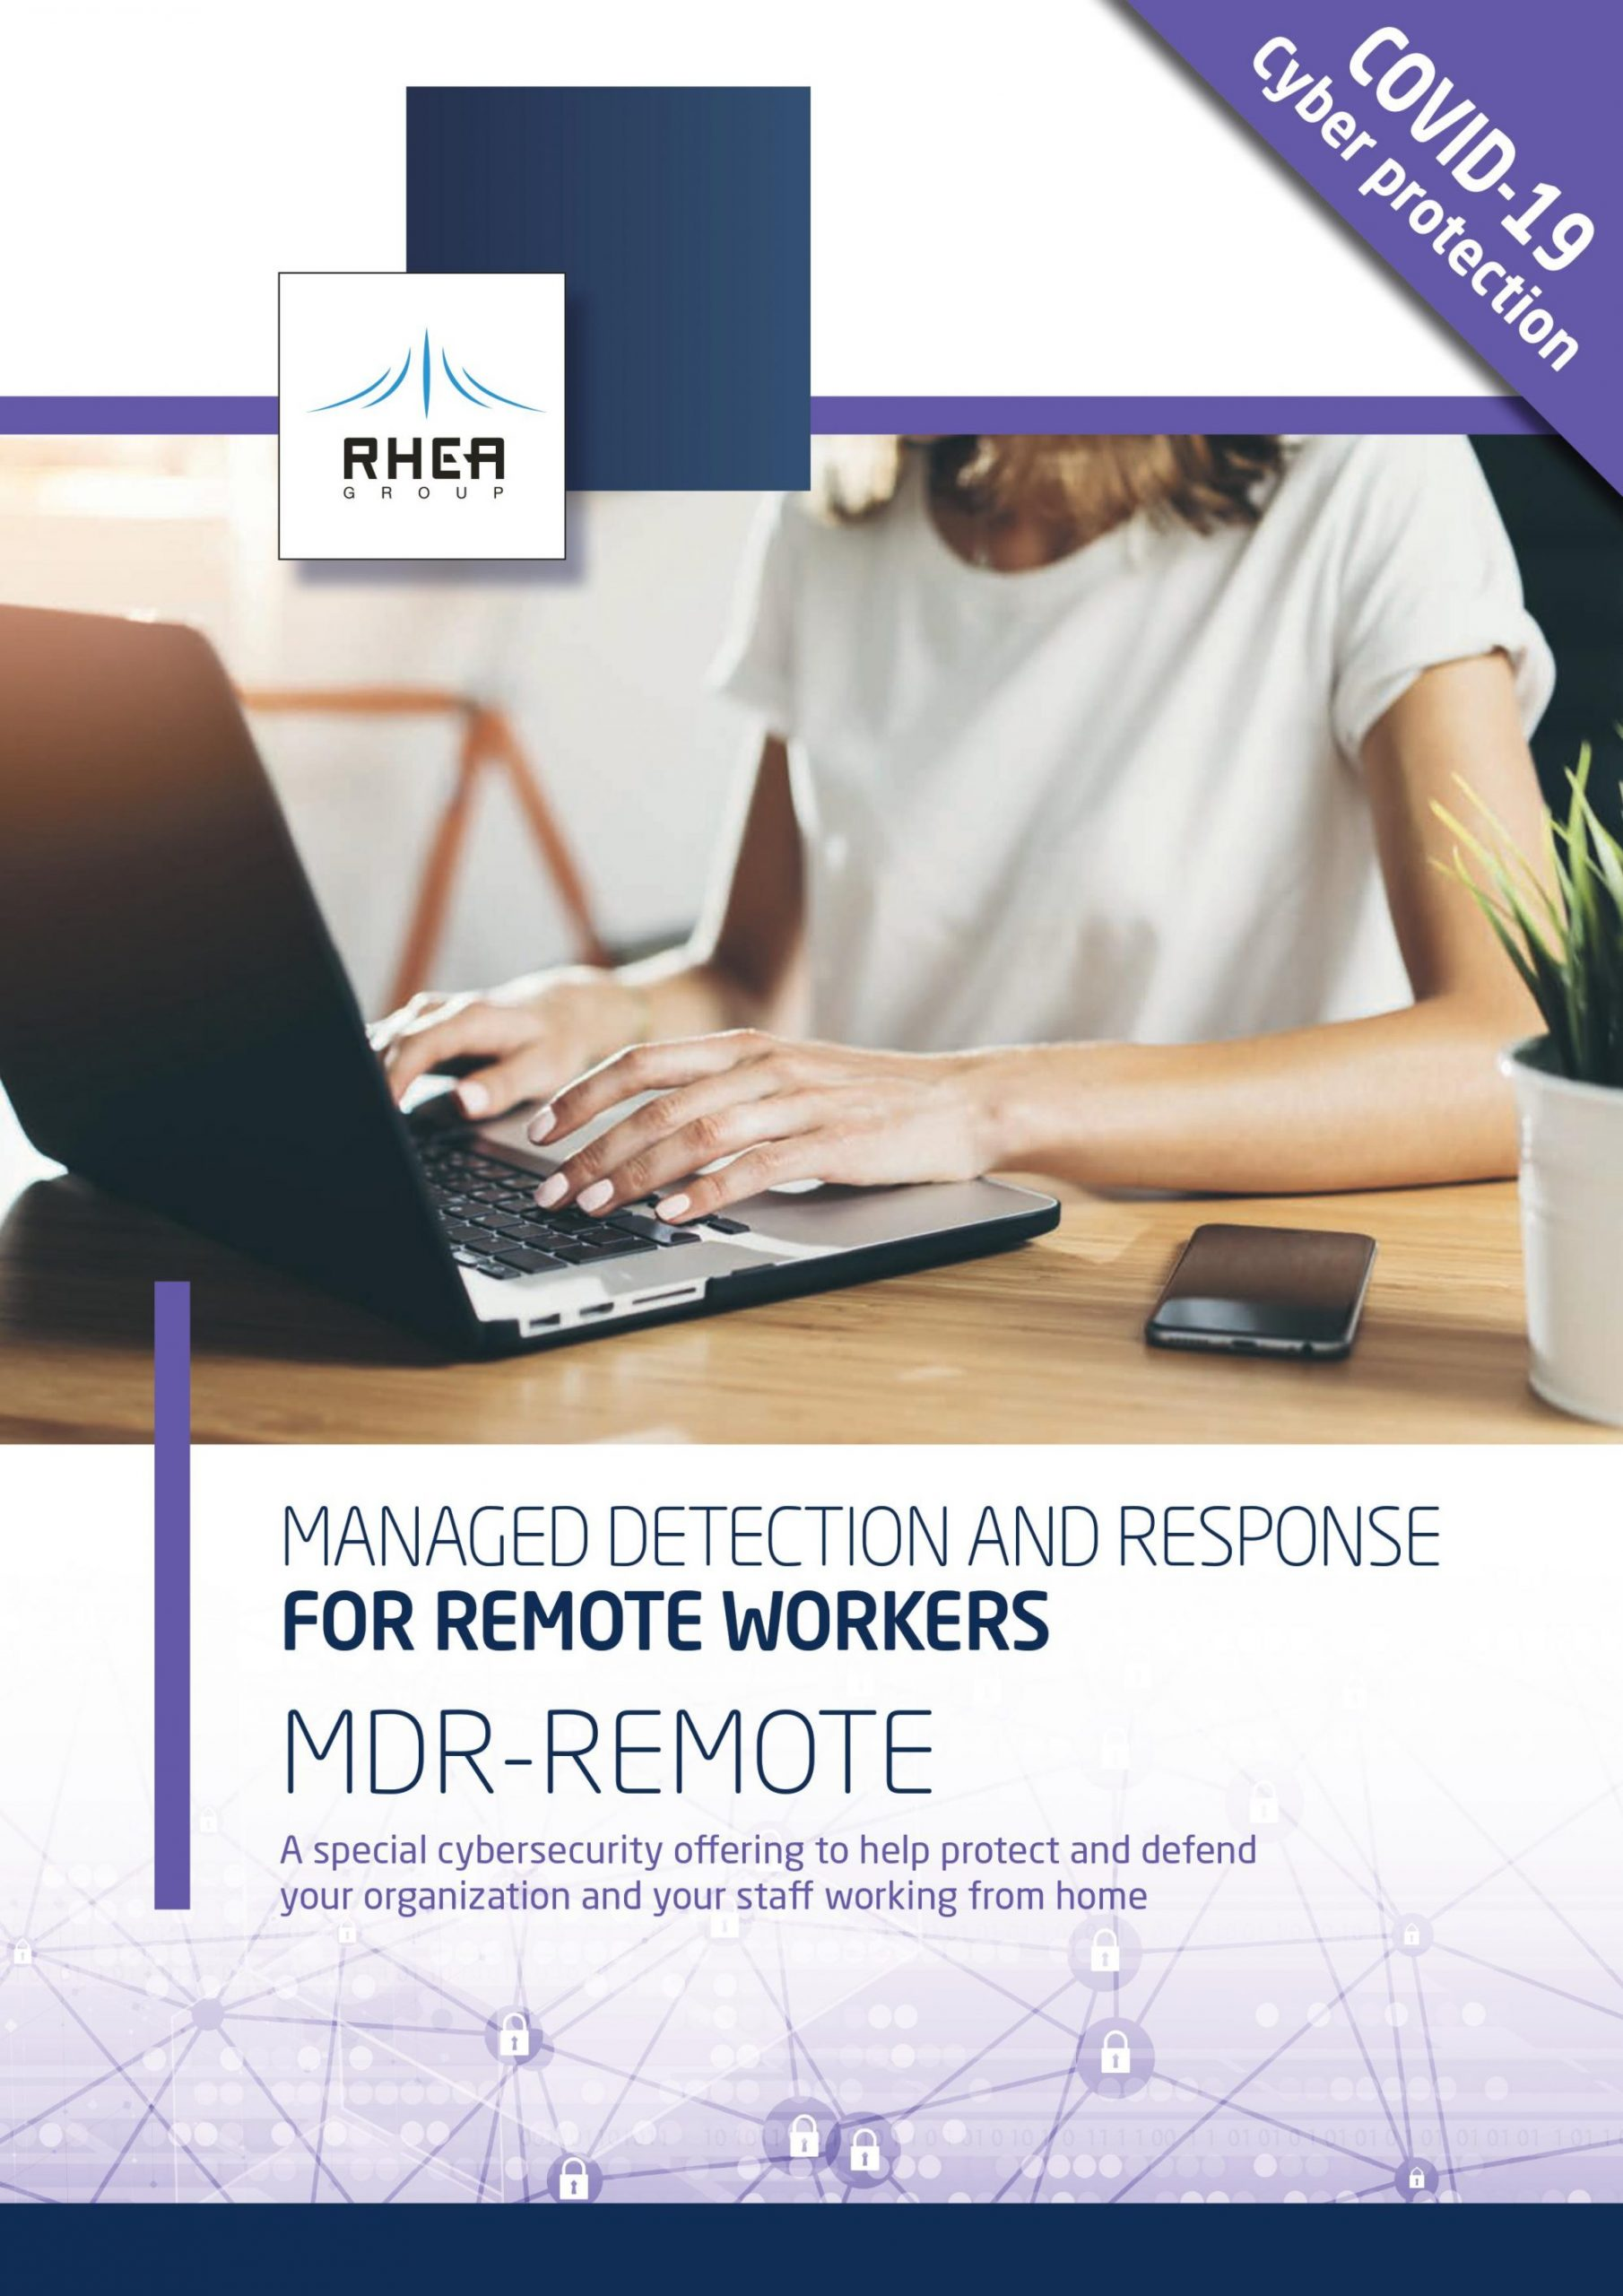 RHEA Group MDR Remote brochure cover